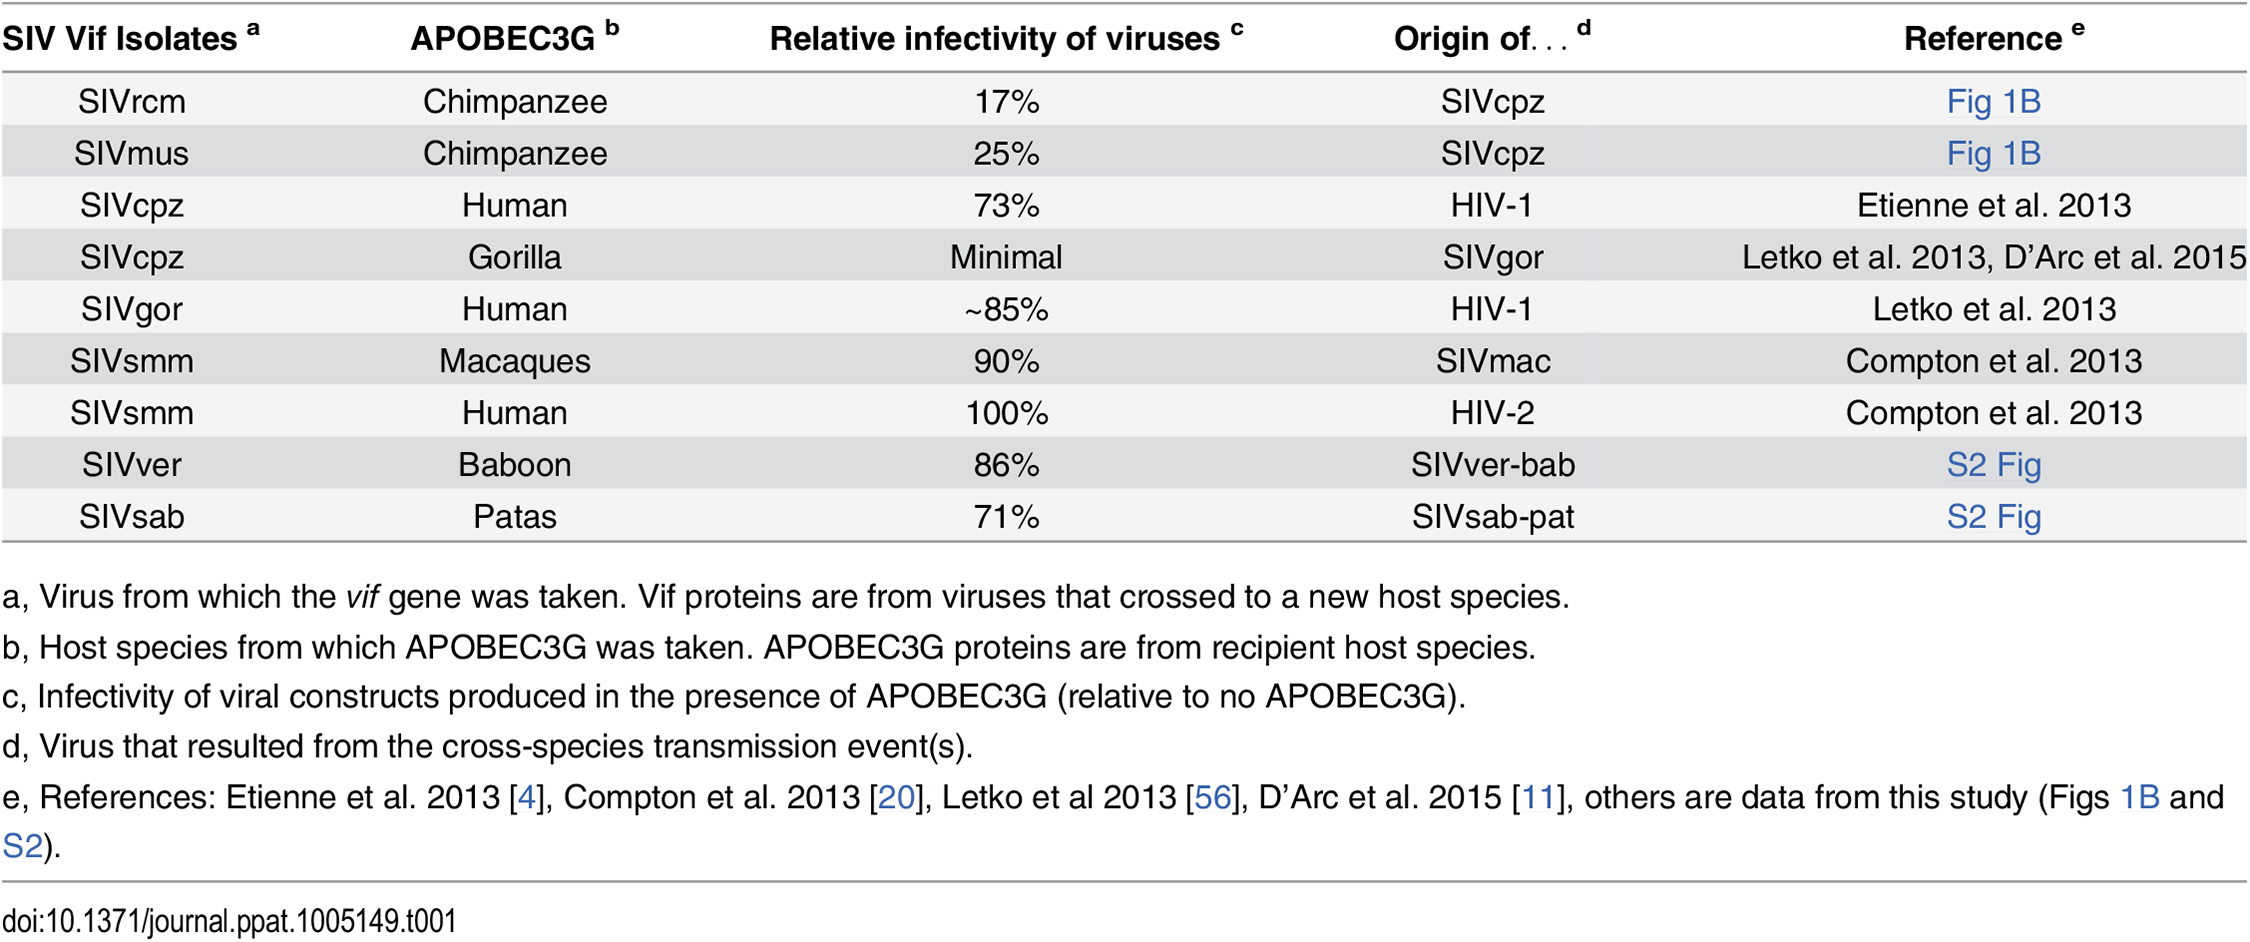 All viruses that naturally jumped the species barrier had some capacity to antagonize the new species APOBEC3G.